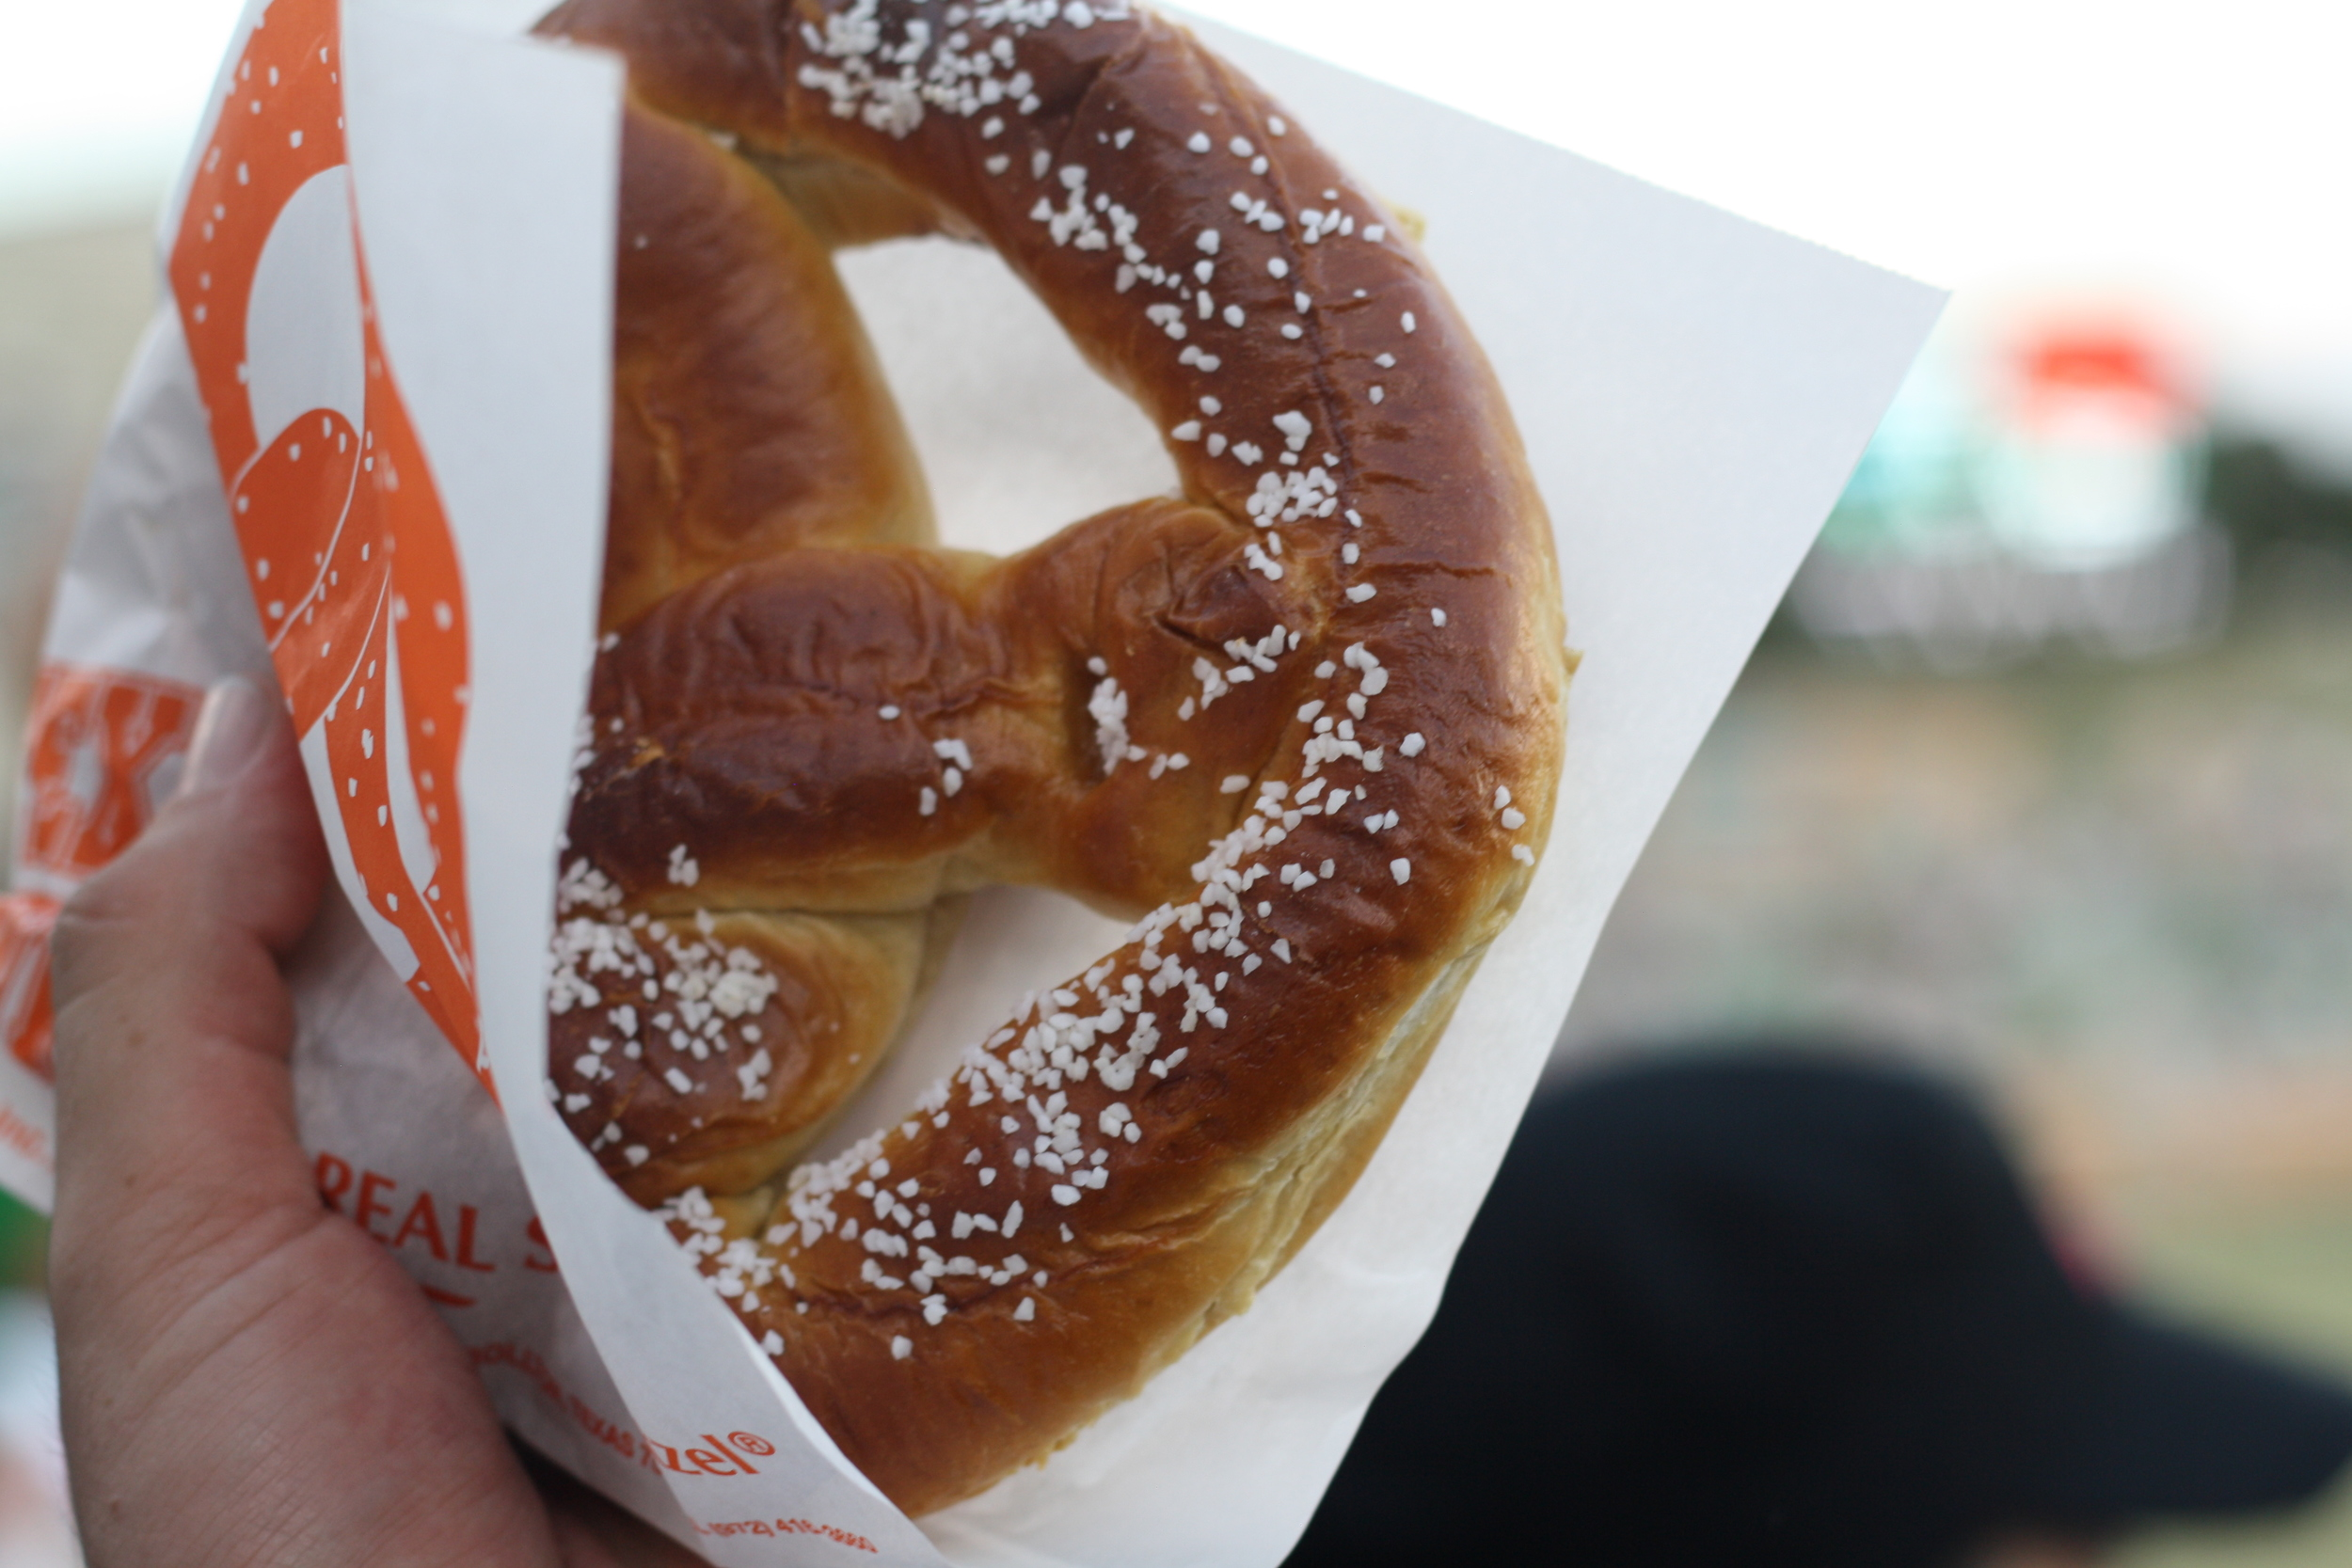 A football game is the perfect time to partake in a big giant pretzel.